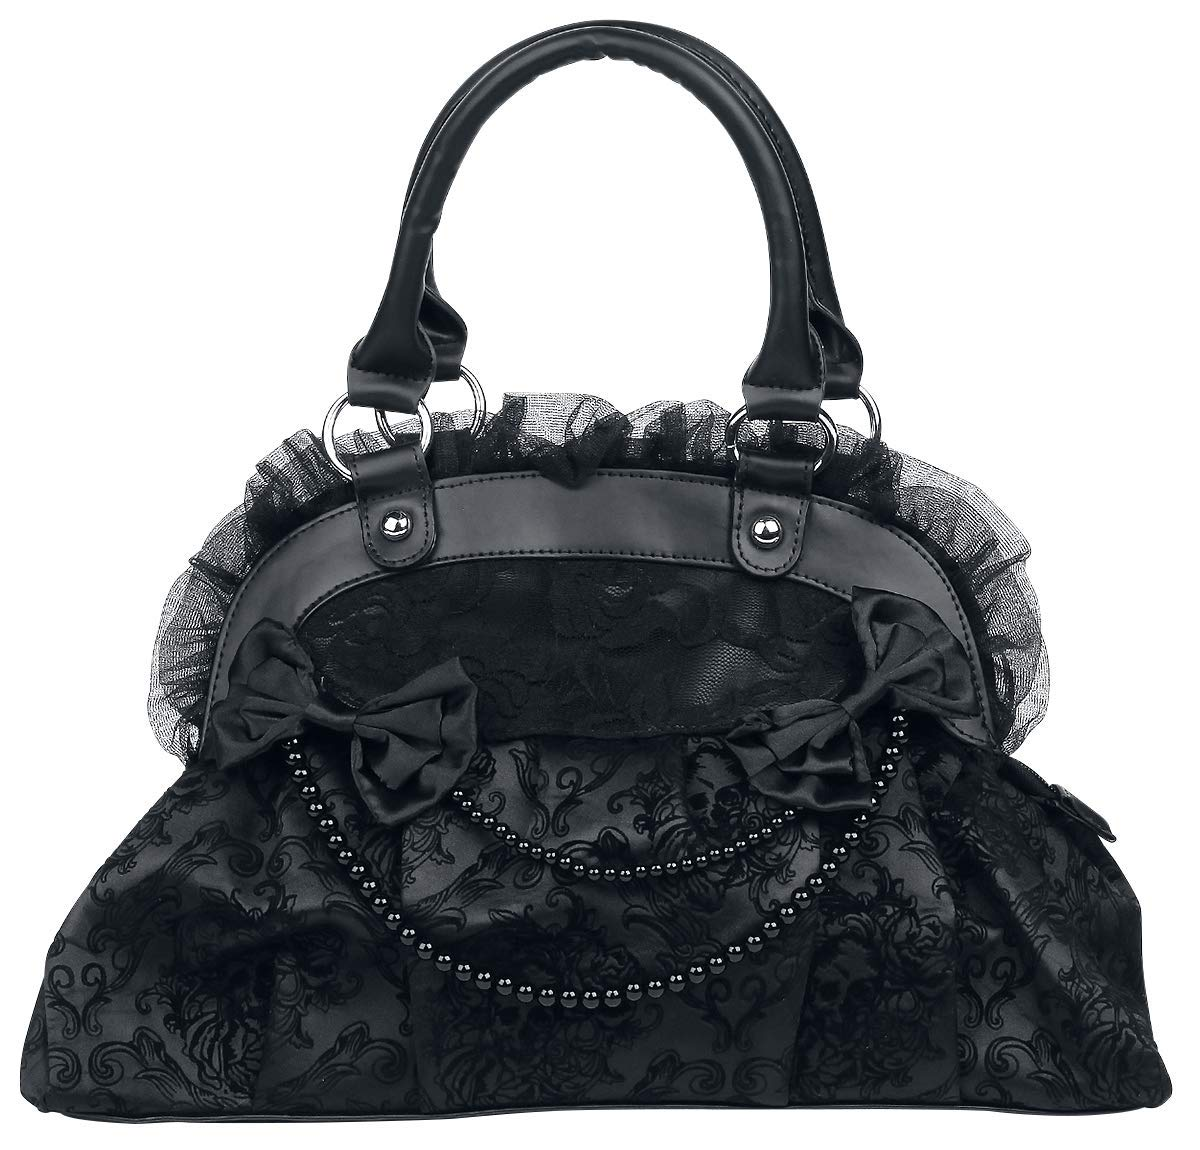 Black bag with bows and frills Banned